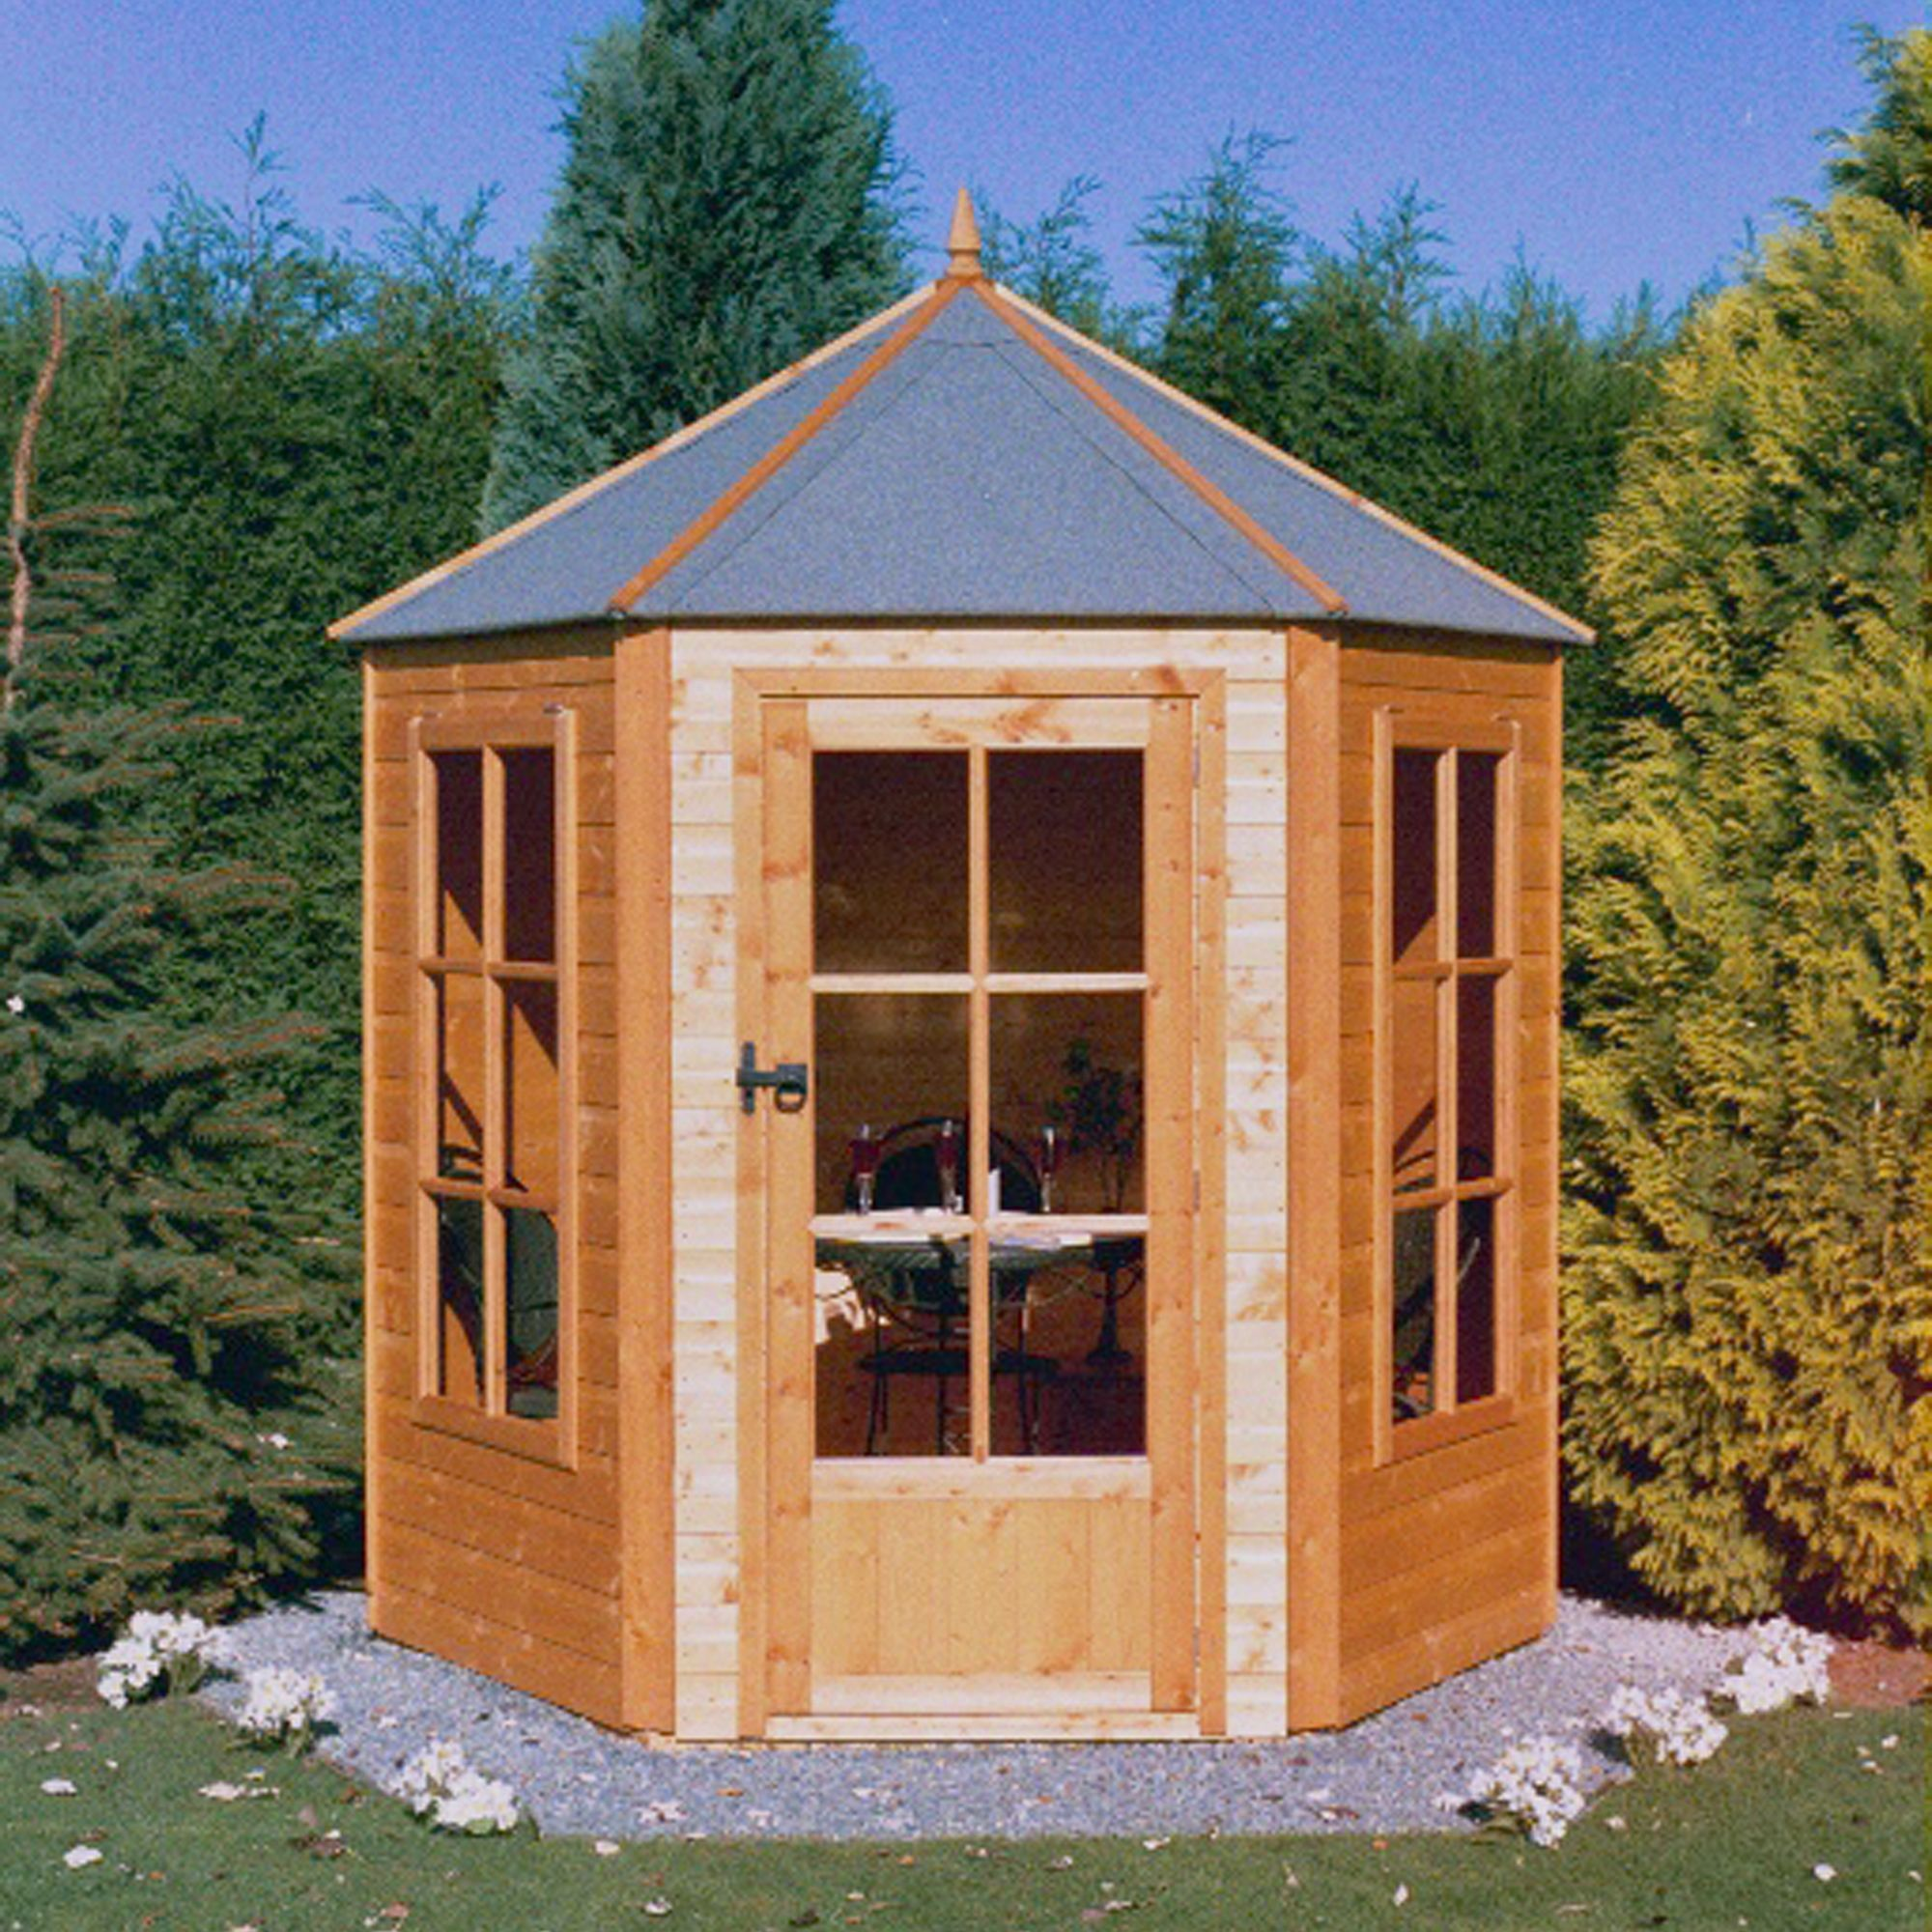 gazebo shiplap timber summerhouse with assembly service bq for all your home and garden supplies and advice on all the latest diy trends - Garden Sheds B Q